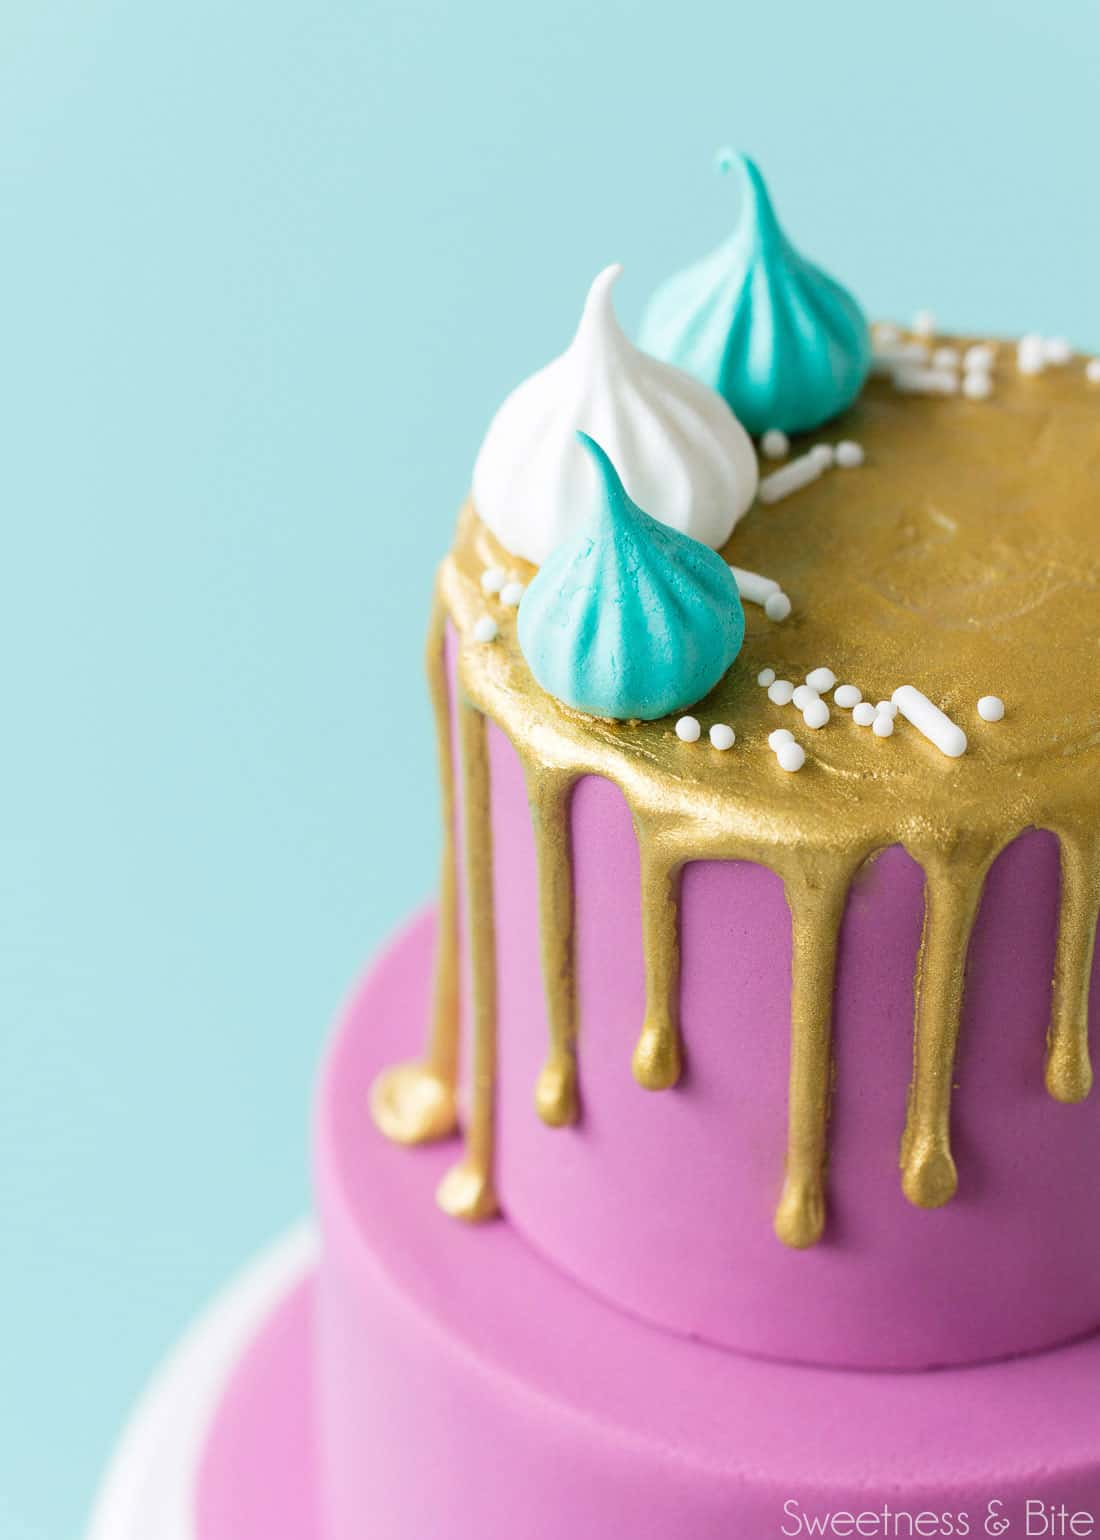 Close up of the top tier of the mini cake, with the gold drip and decorated with white and teal mini meringues and white sprinkles.